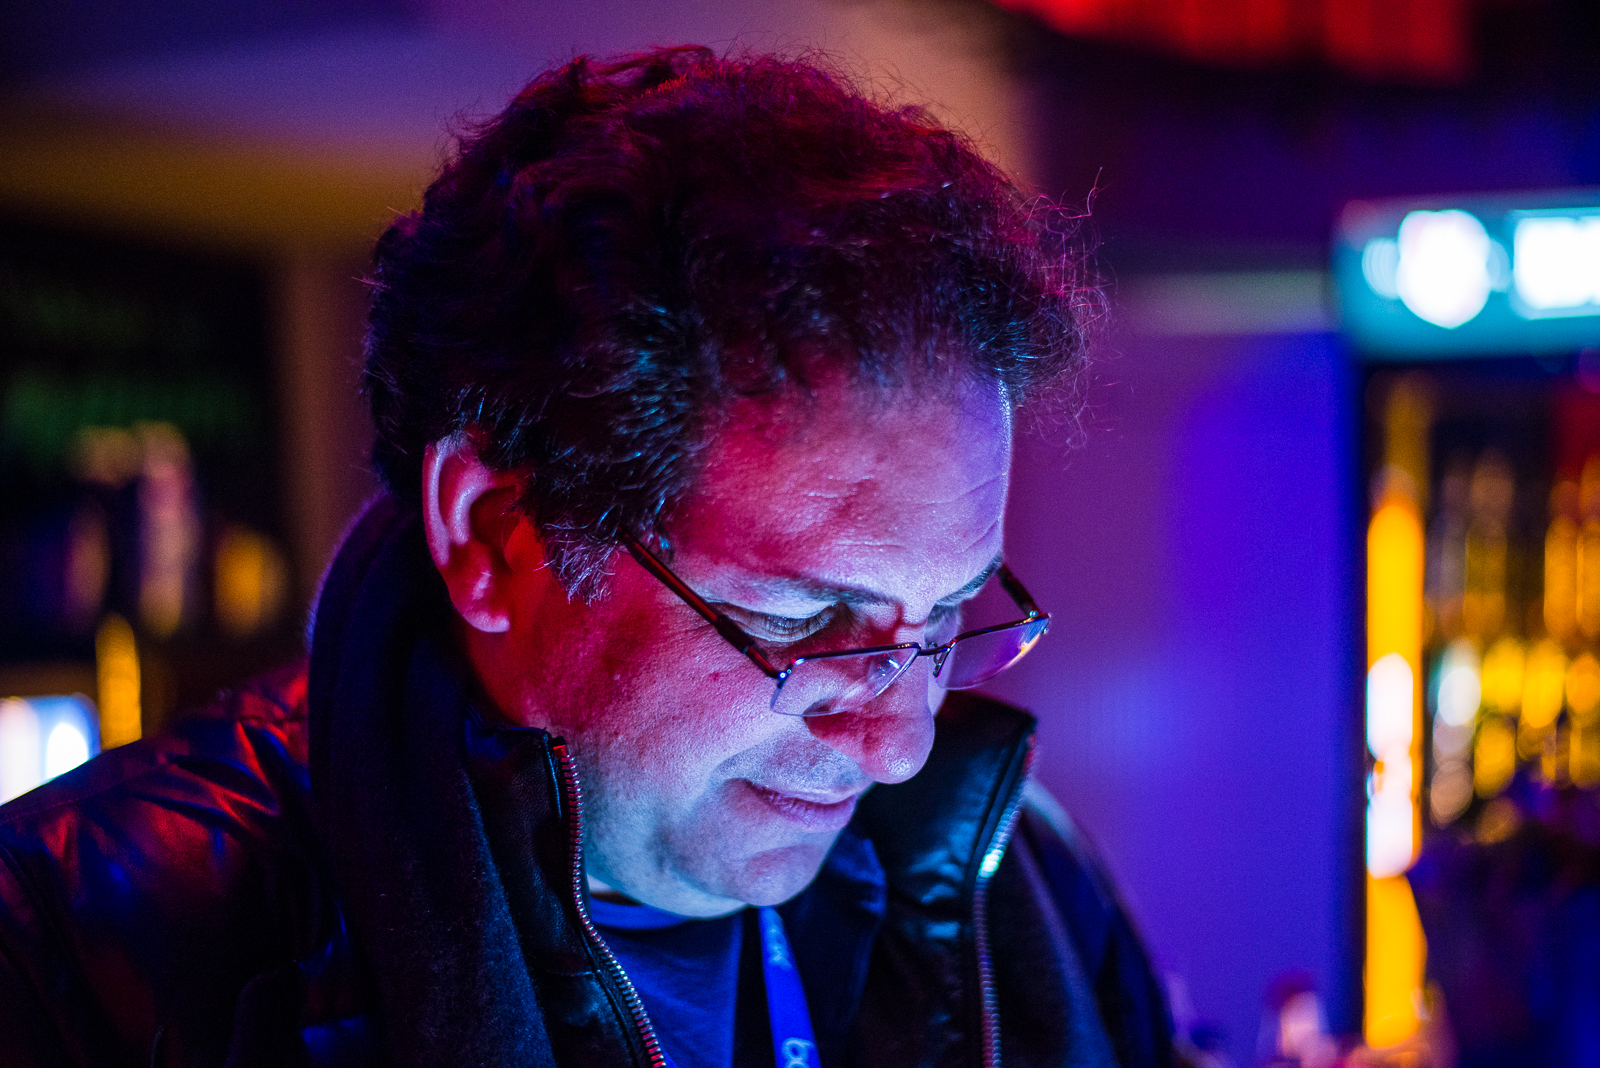 Kevin-Mitnick-Dark-Shot-2-High-Resolution